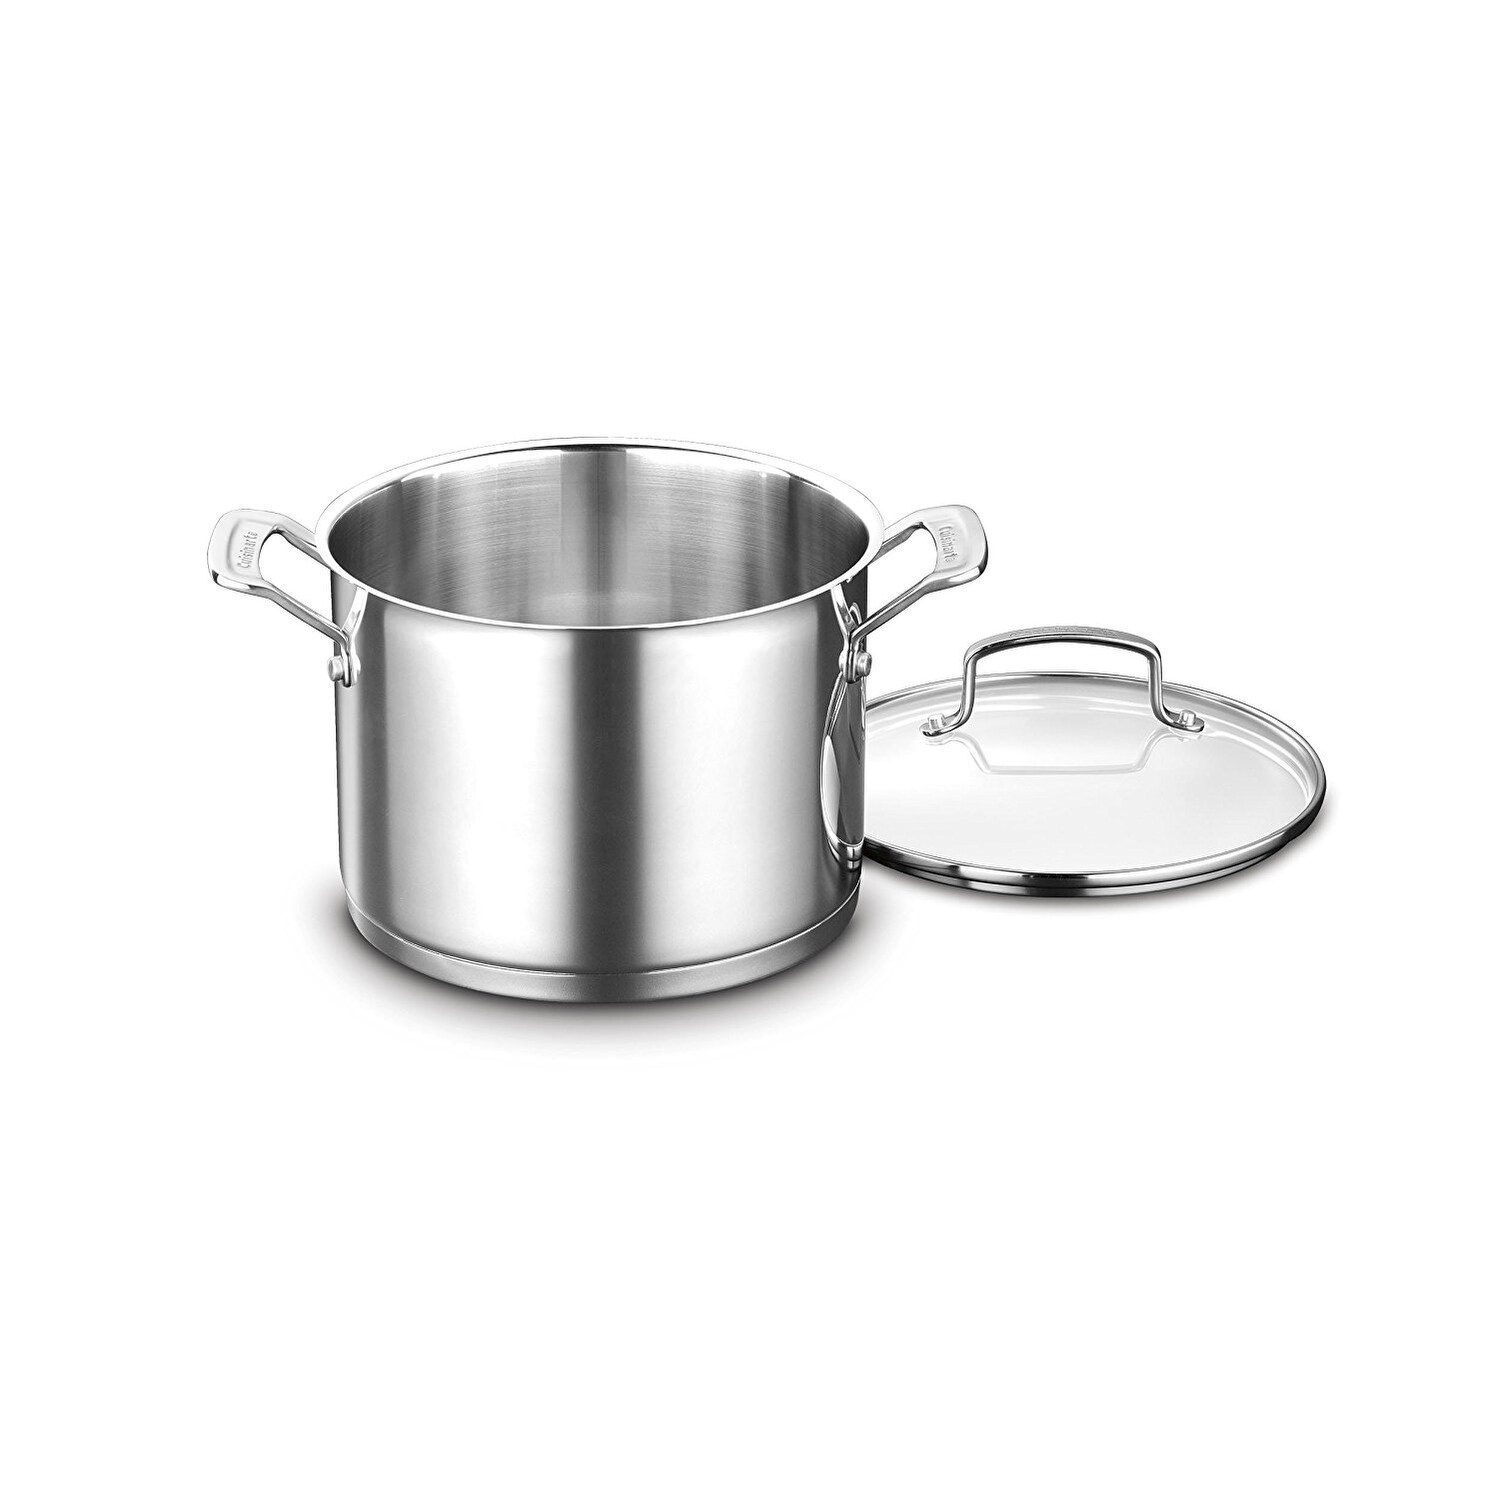 Big W Stock Pot Cuisinart 8966 22 6 Quart Stockpot W Cover Stainless Steel